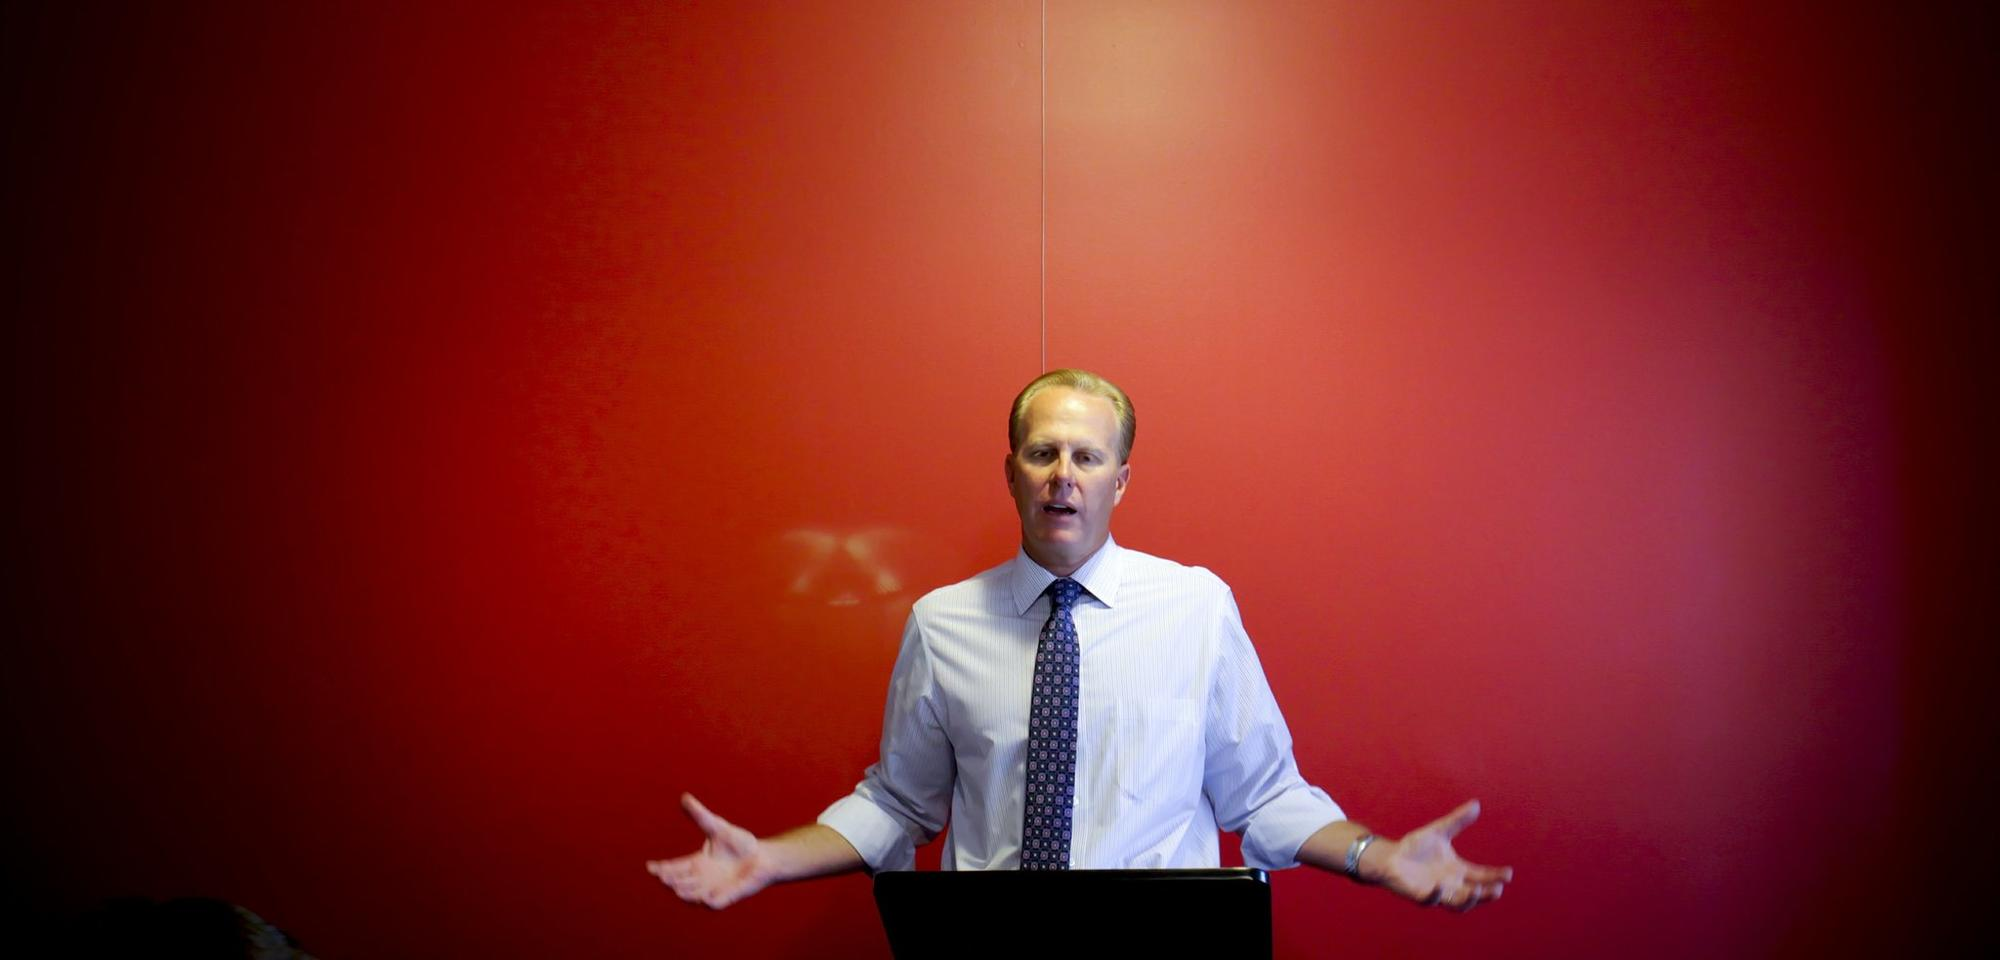 San Diego City Council member and mayoral candidate Kevin Faulconer prepares for the first mayoral debate with campaign staff members at a downtown consulting firm.